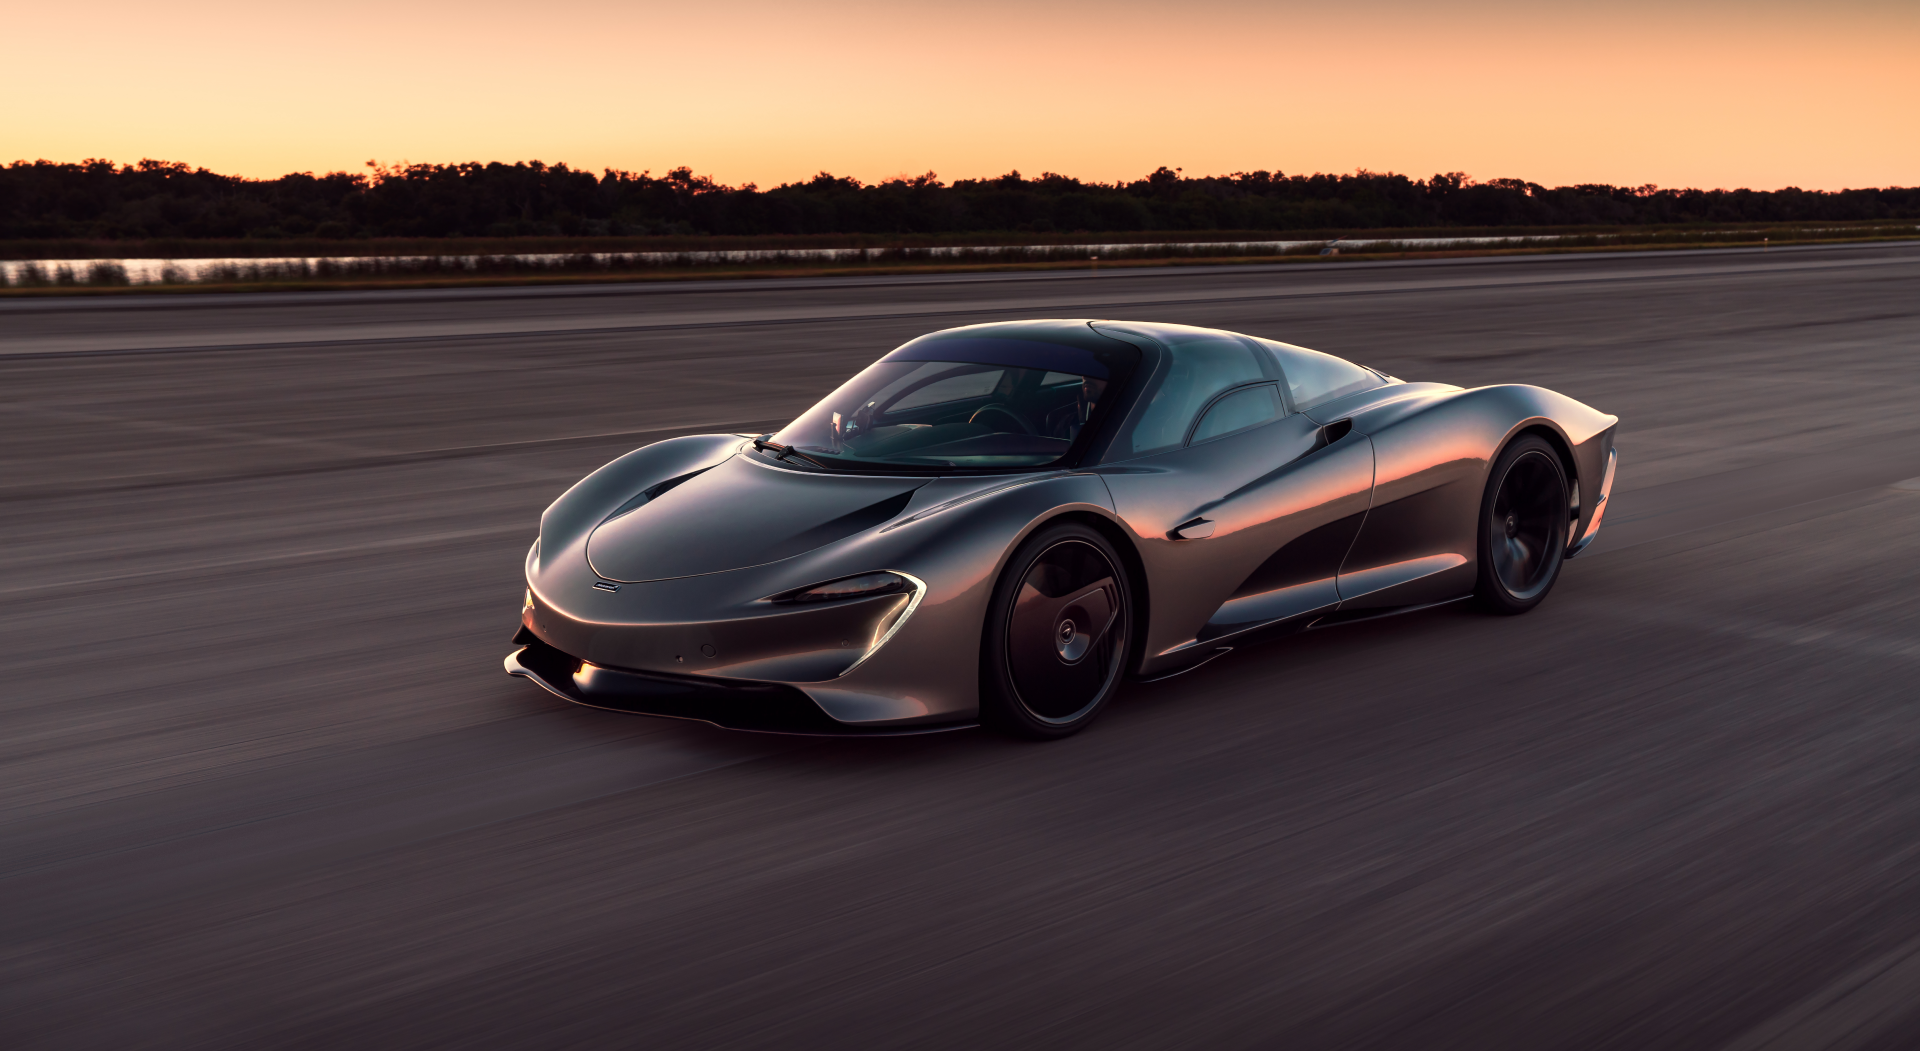 McLaren Speedtail hits 250mph